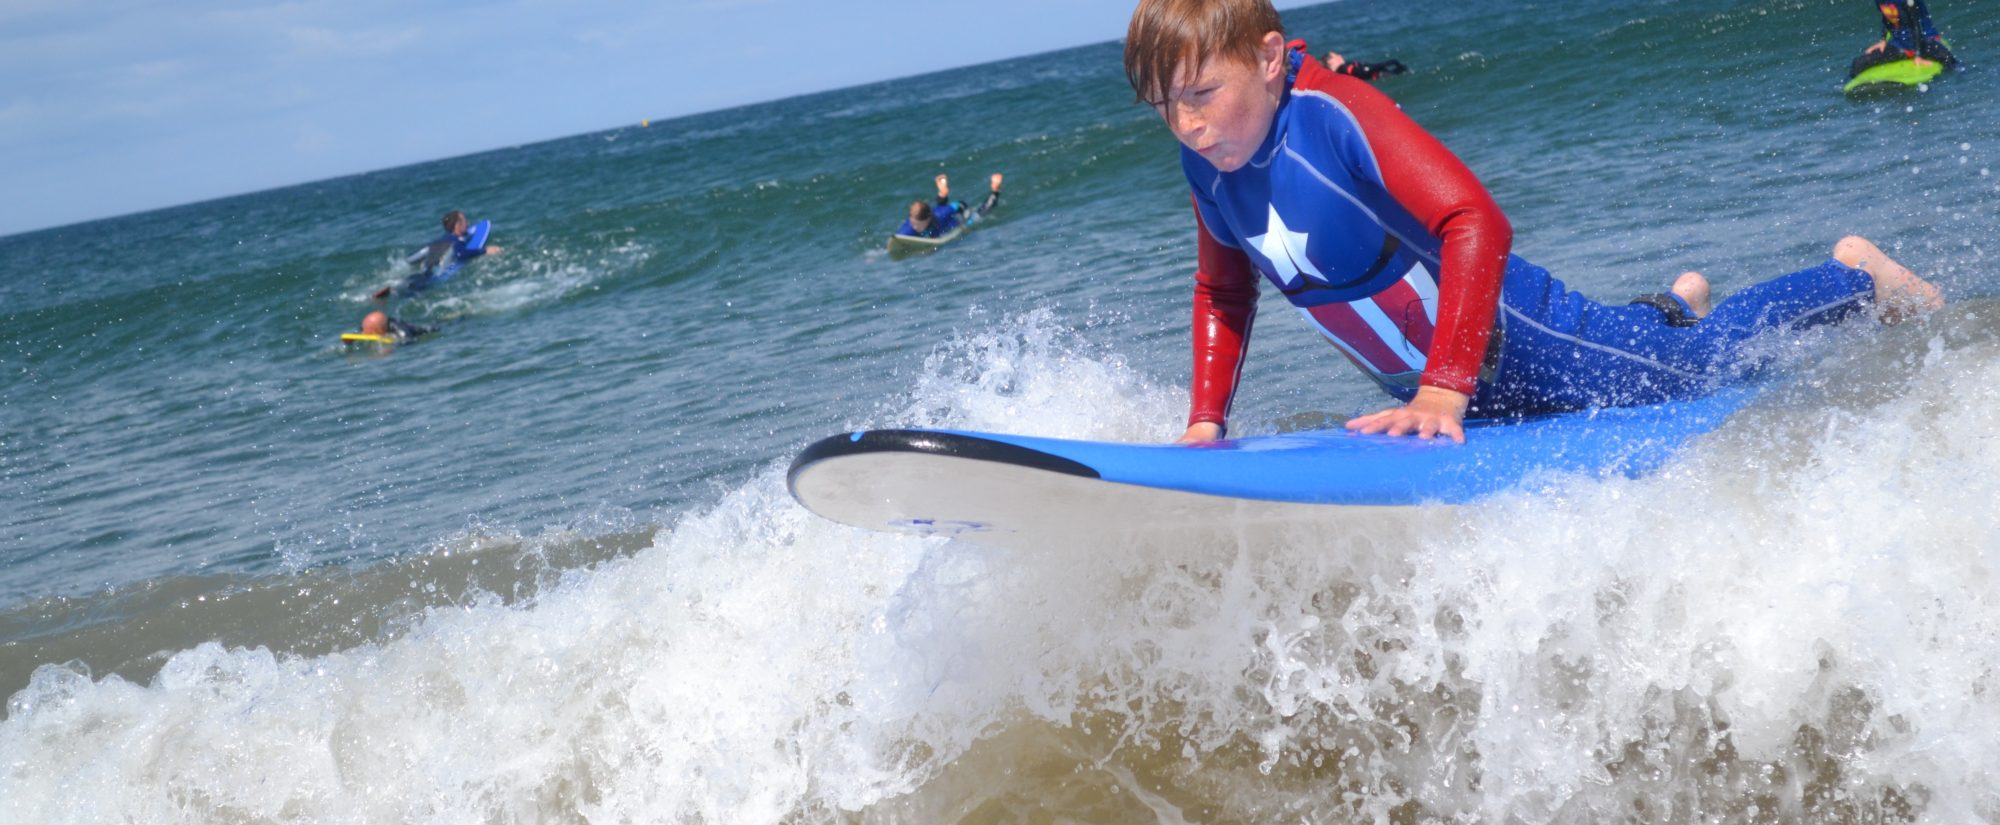 boy dressed as captain america surfing